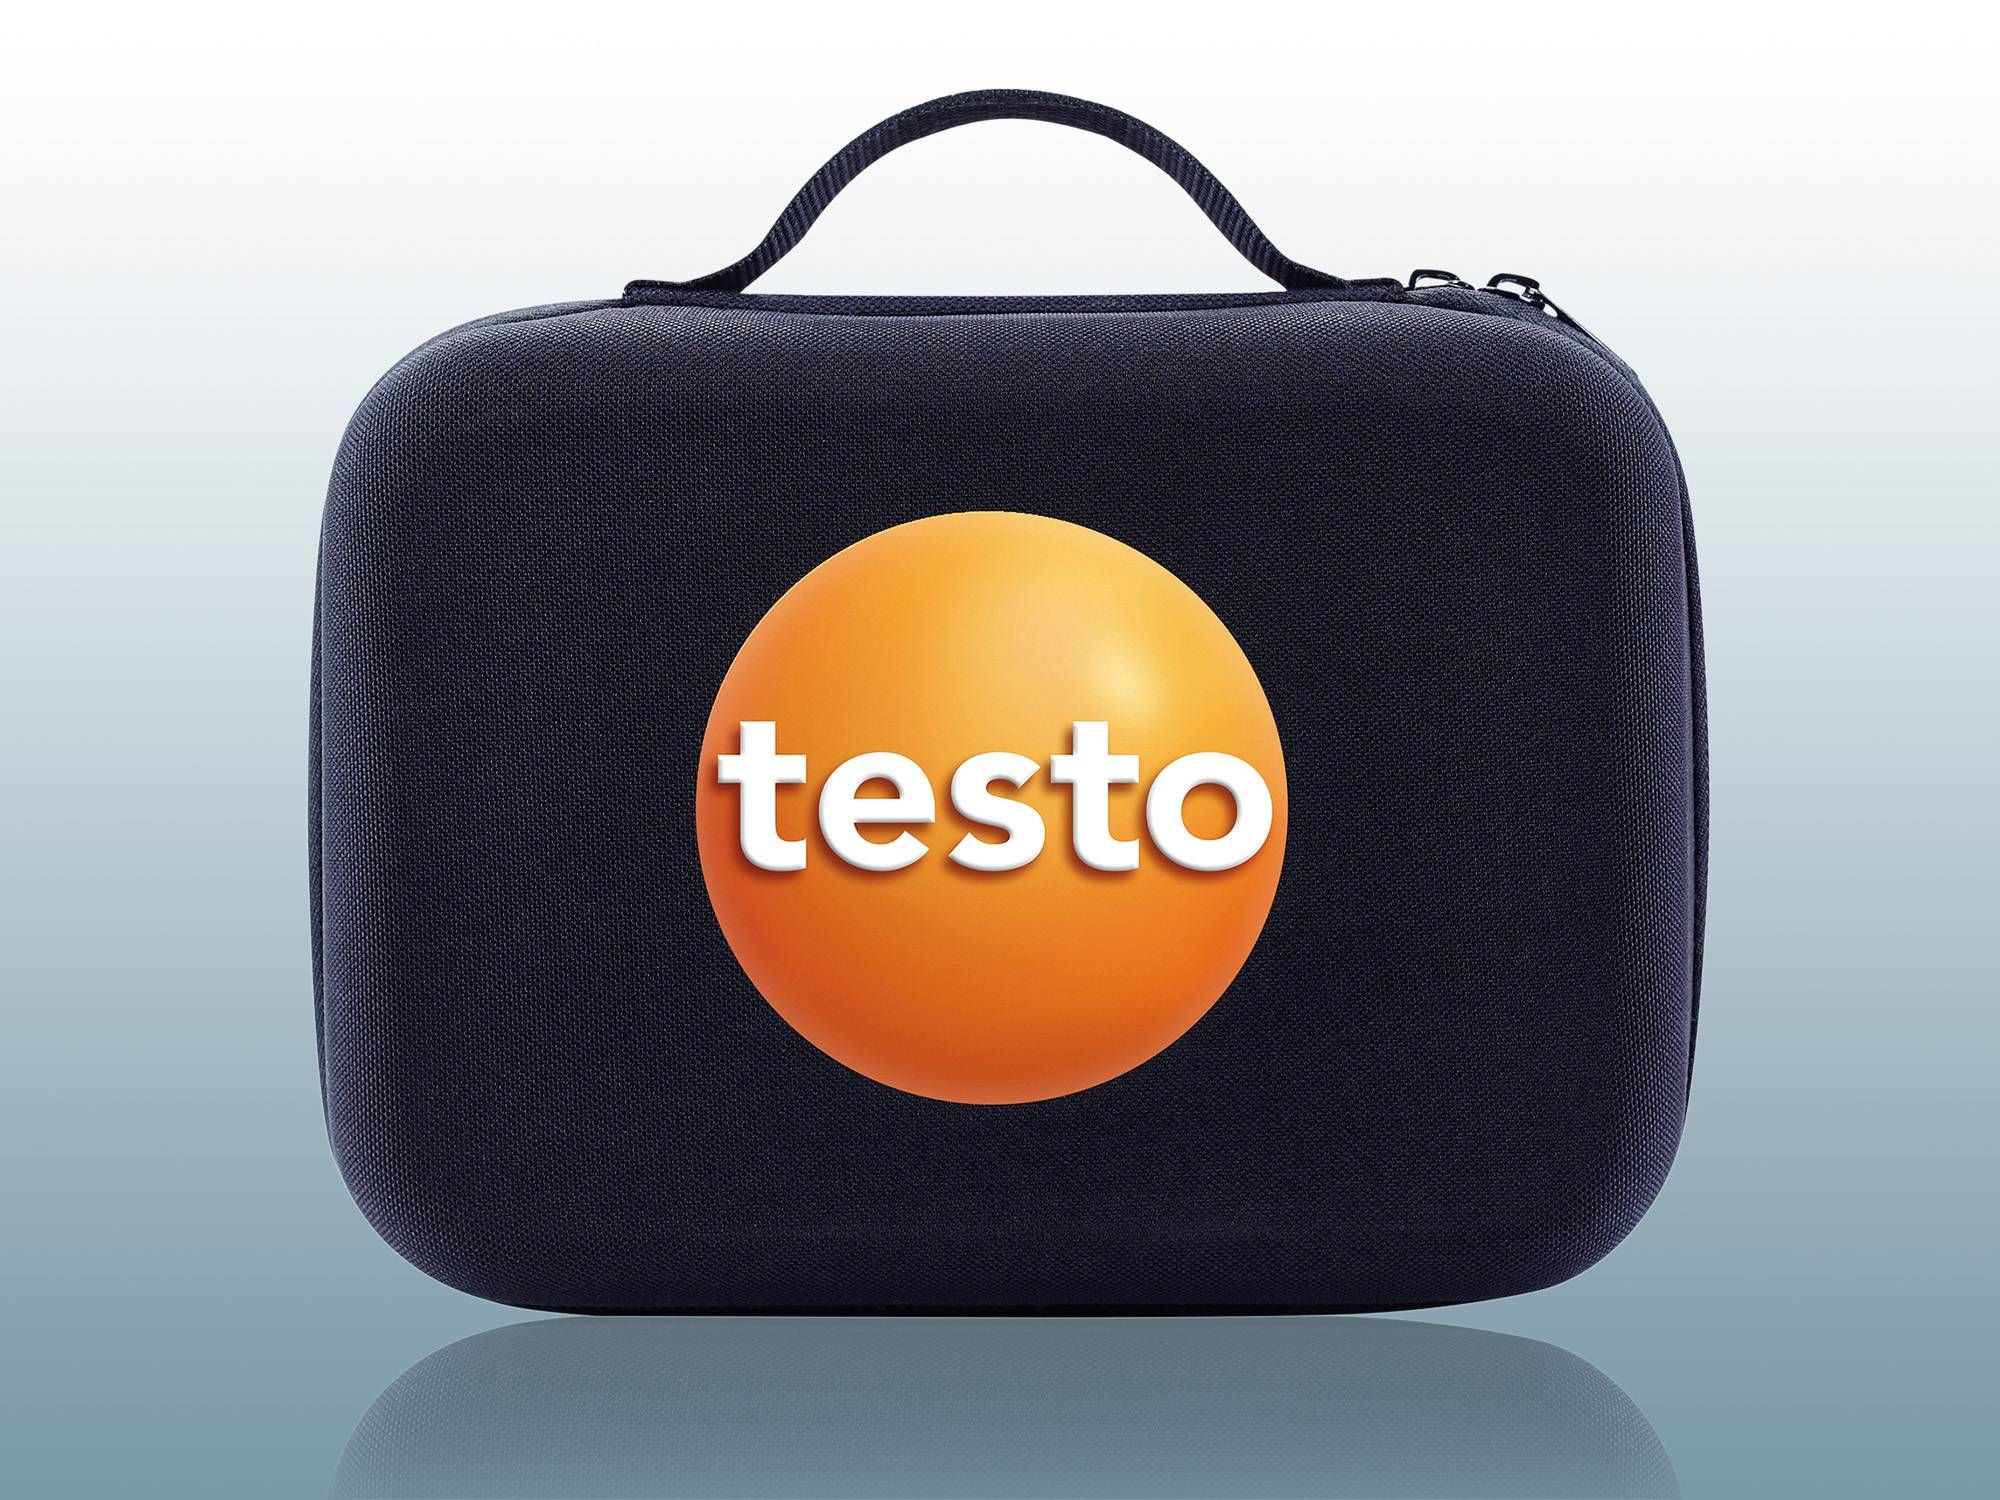 Large Softcase for testo Smart Probes measuring instruments